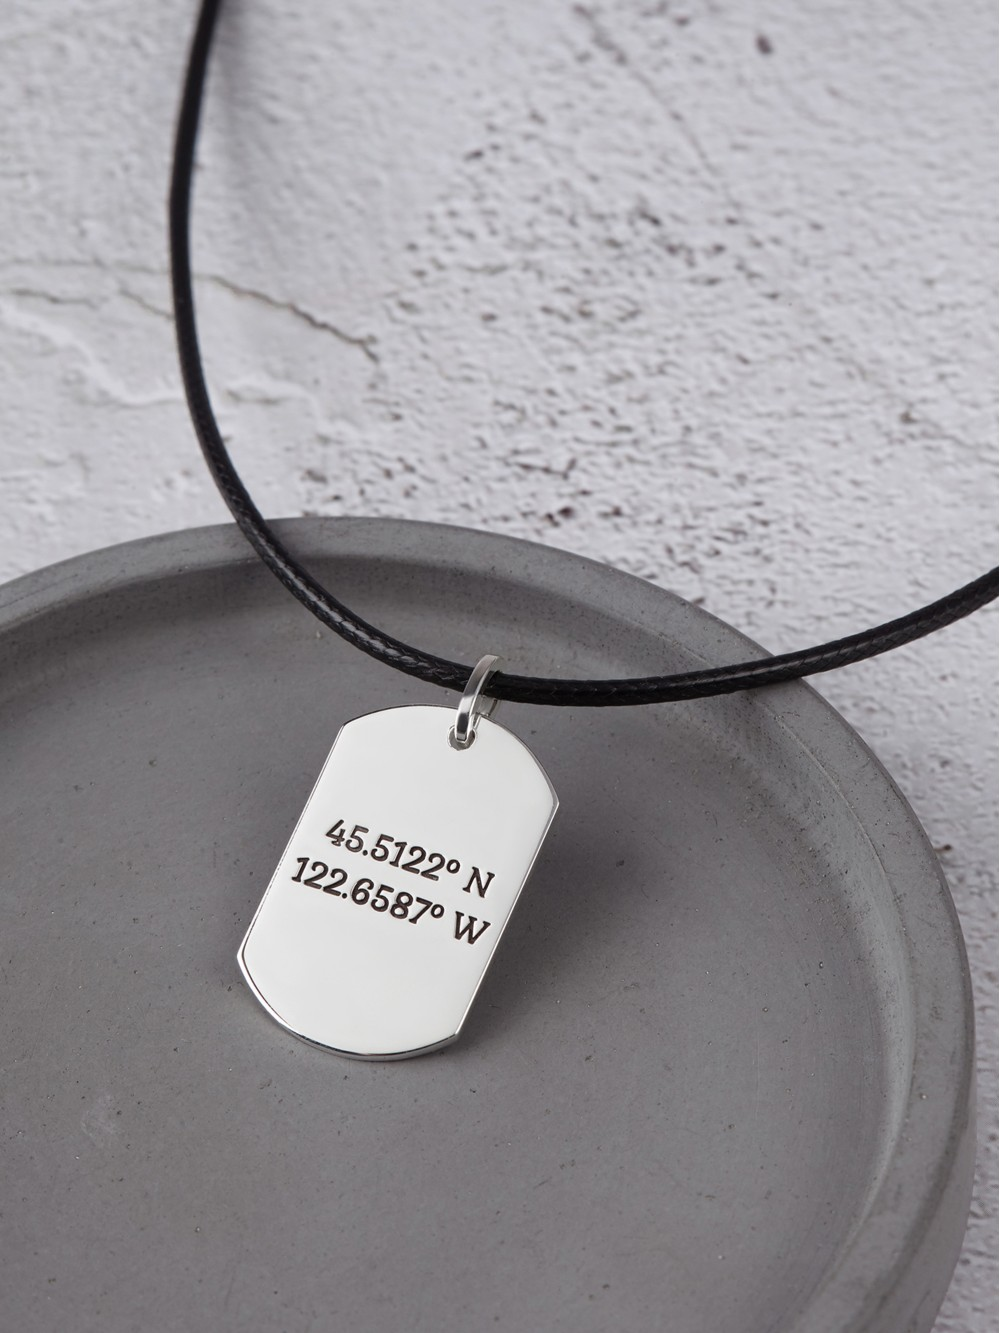 Dog Tag Coordinates Necklace for Men - Leather Cord